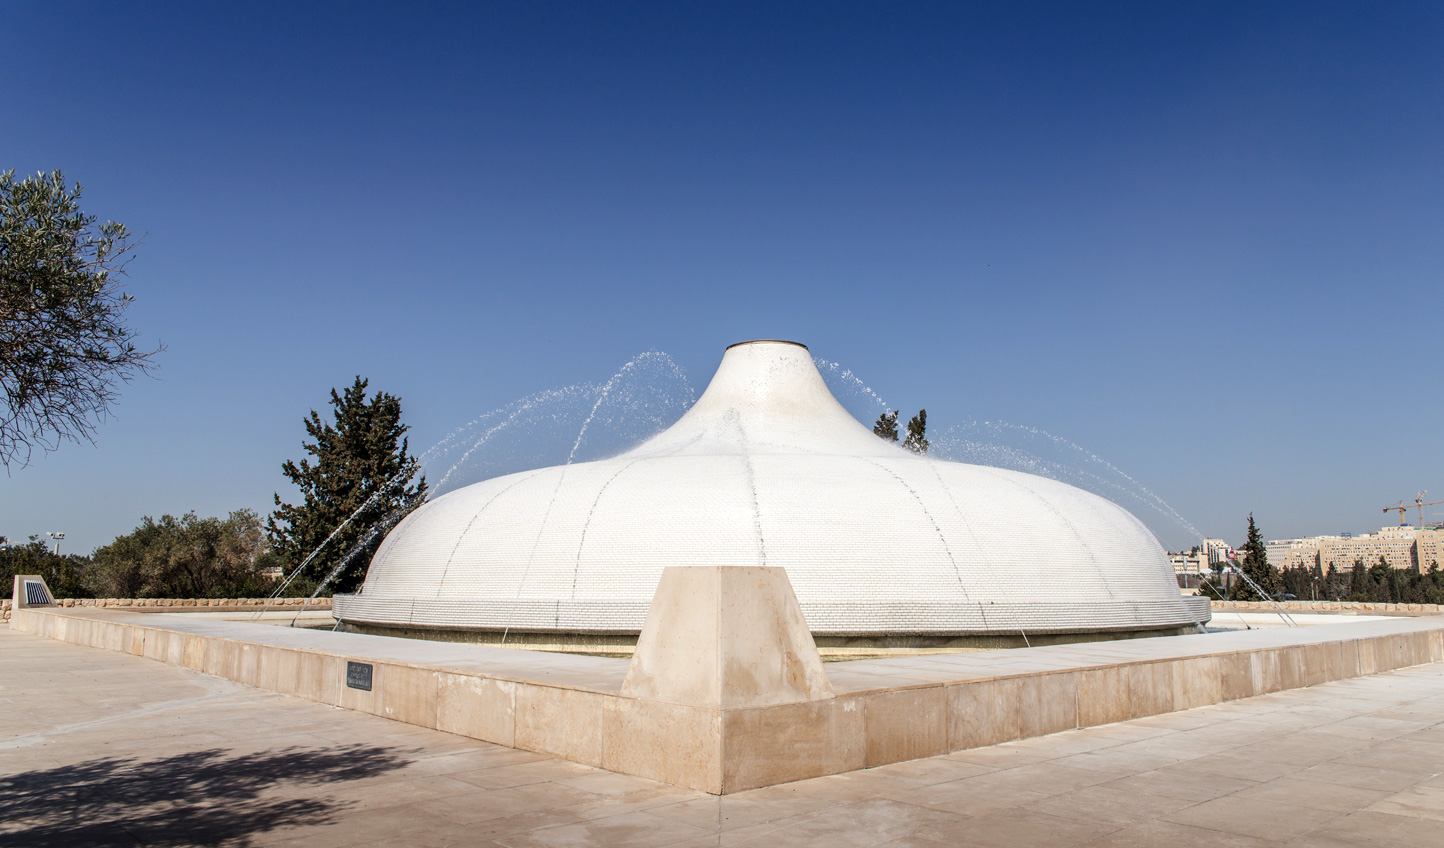 Join a Docent for an indepth look at the Israel Museum